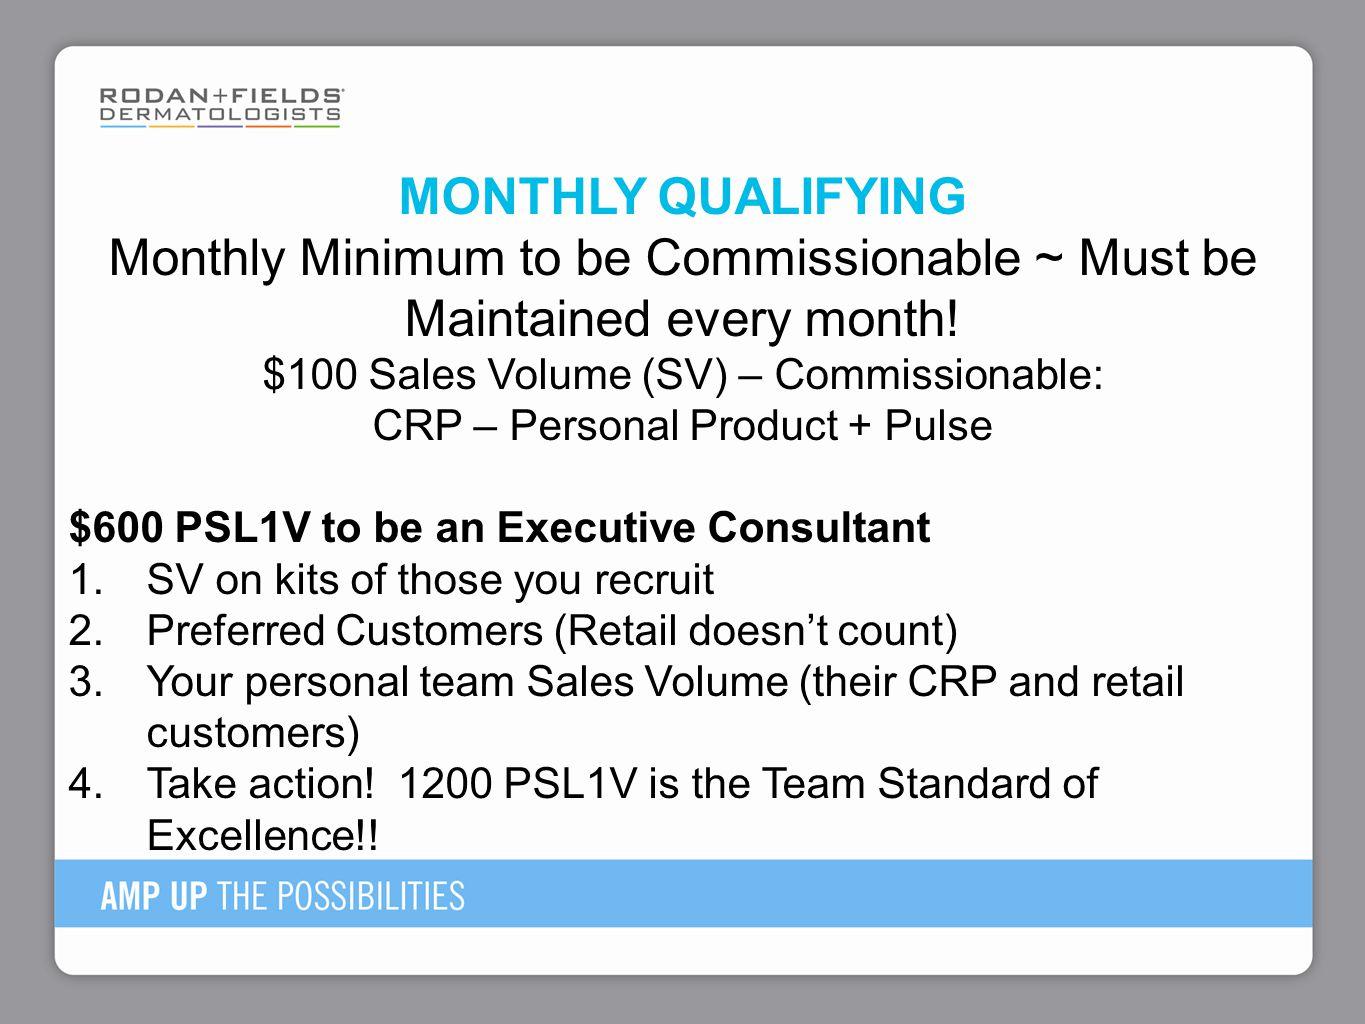 Monthly Minimum to be Commissionable ~ Must be Maintained every month!